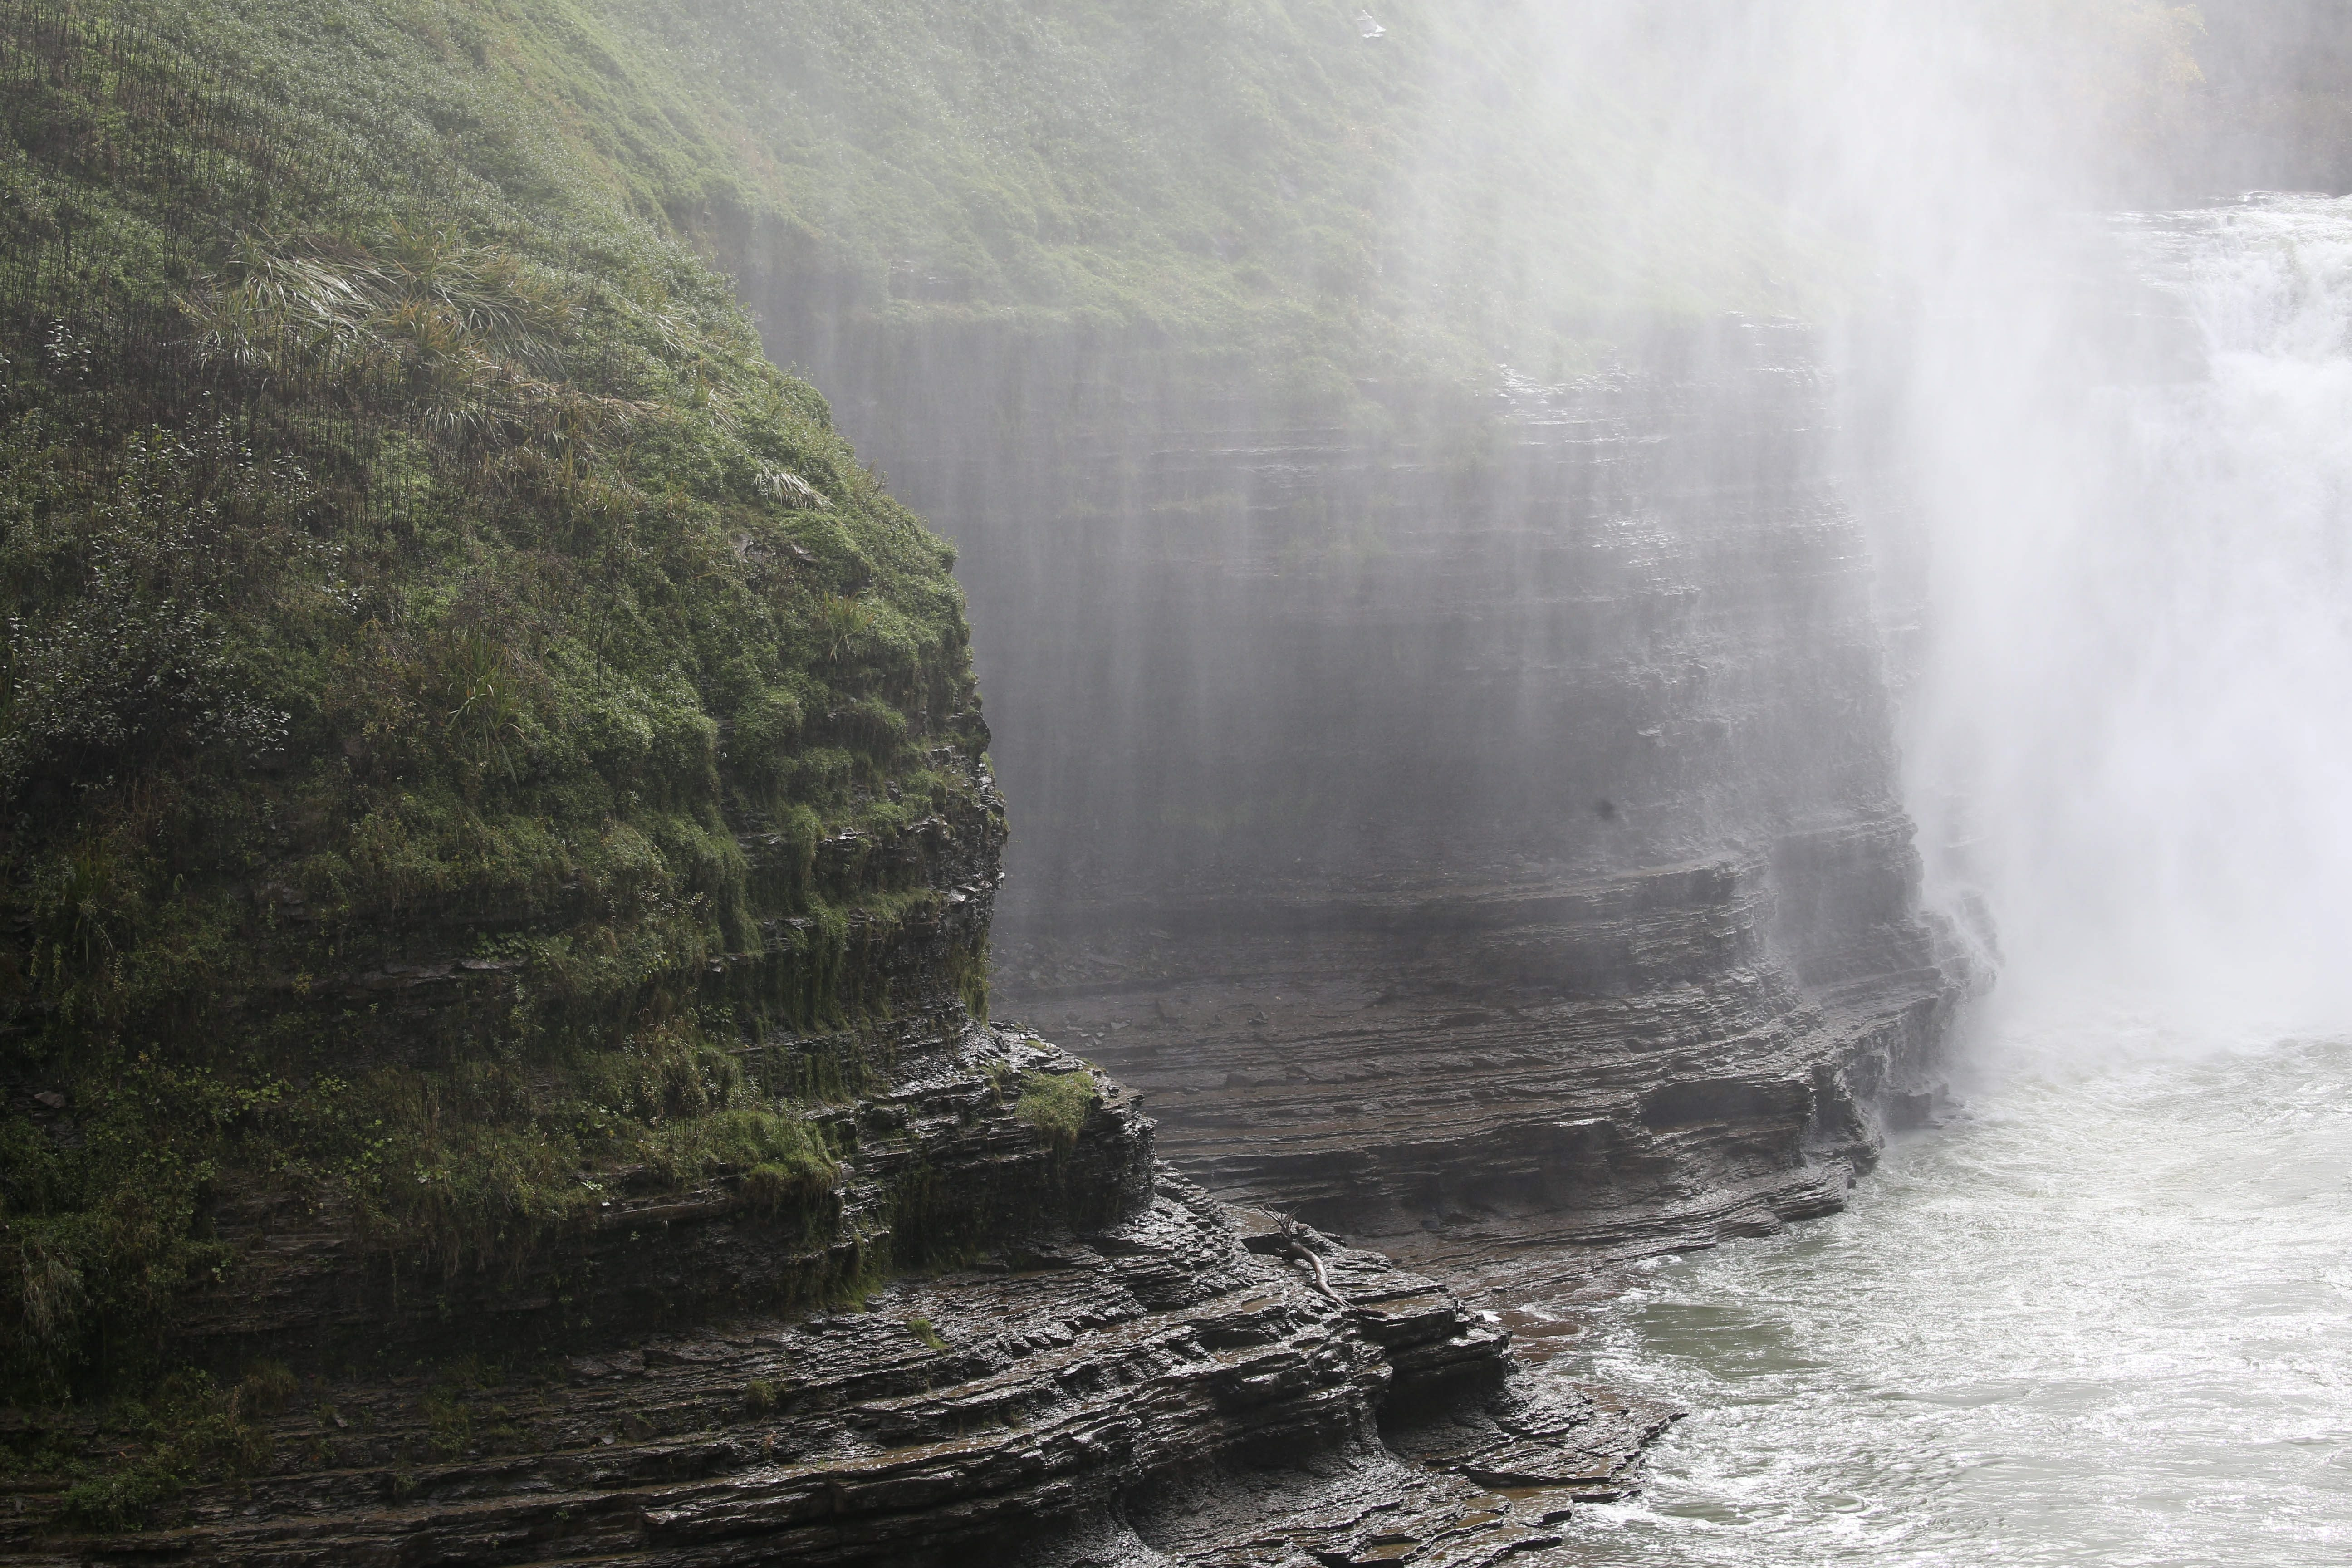 Letchworth State Park, sometimes called the Grand Canyon of the East, draws a multitude of visitors annually. This is at the Upper Falls. (Sharon Cantillon/Buffalo News)